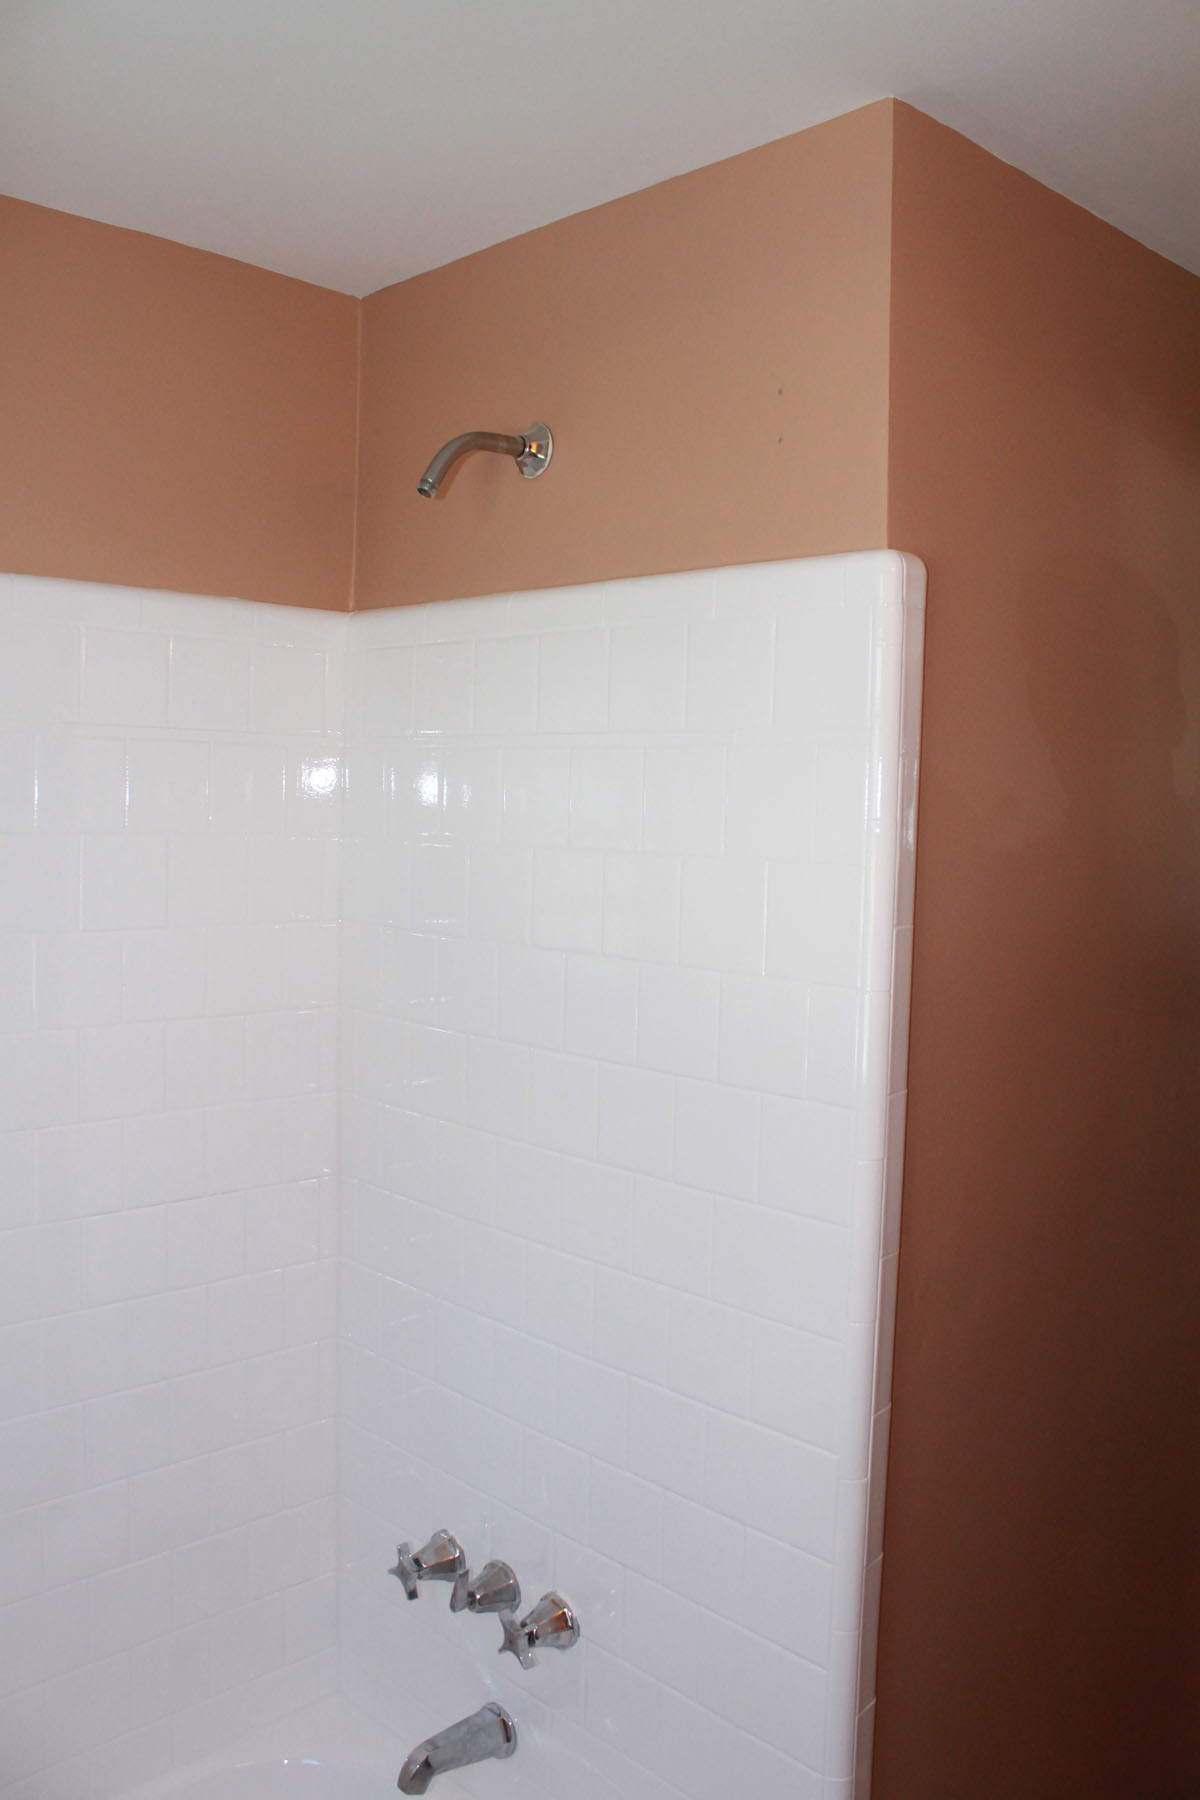 Tub and Tile Reglazing - Bay State Refinishing & Remodeling